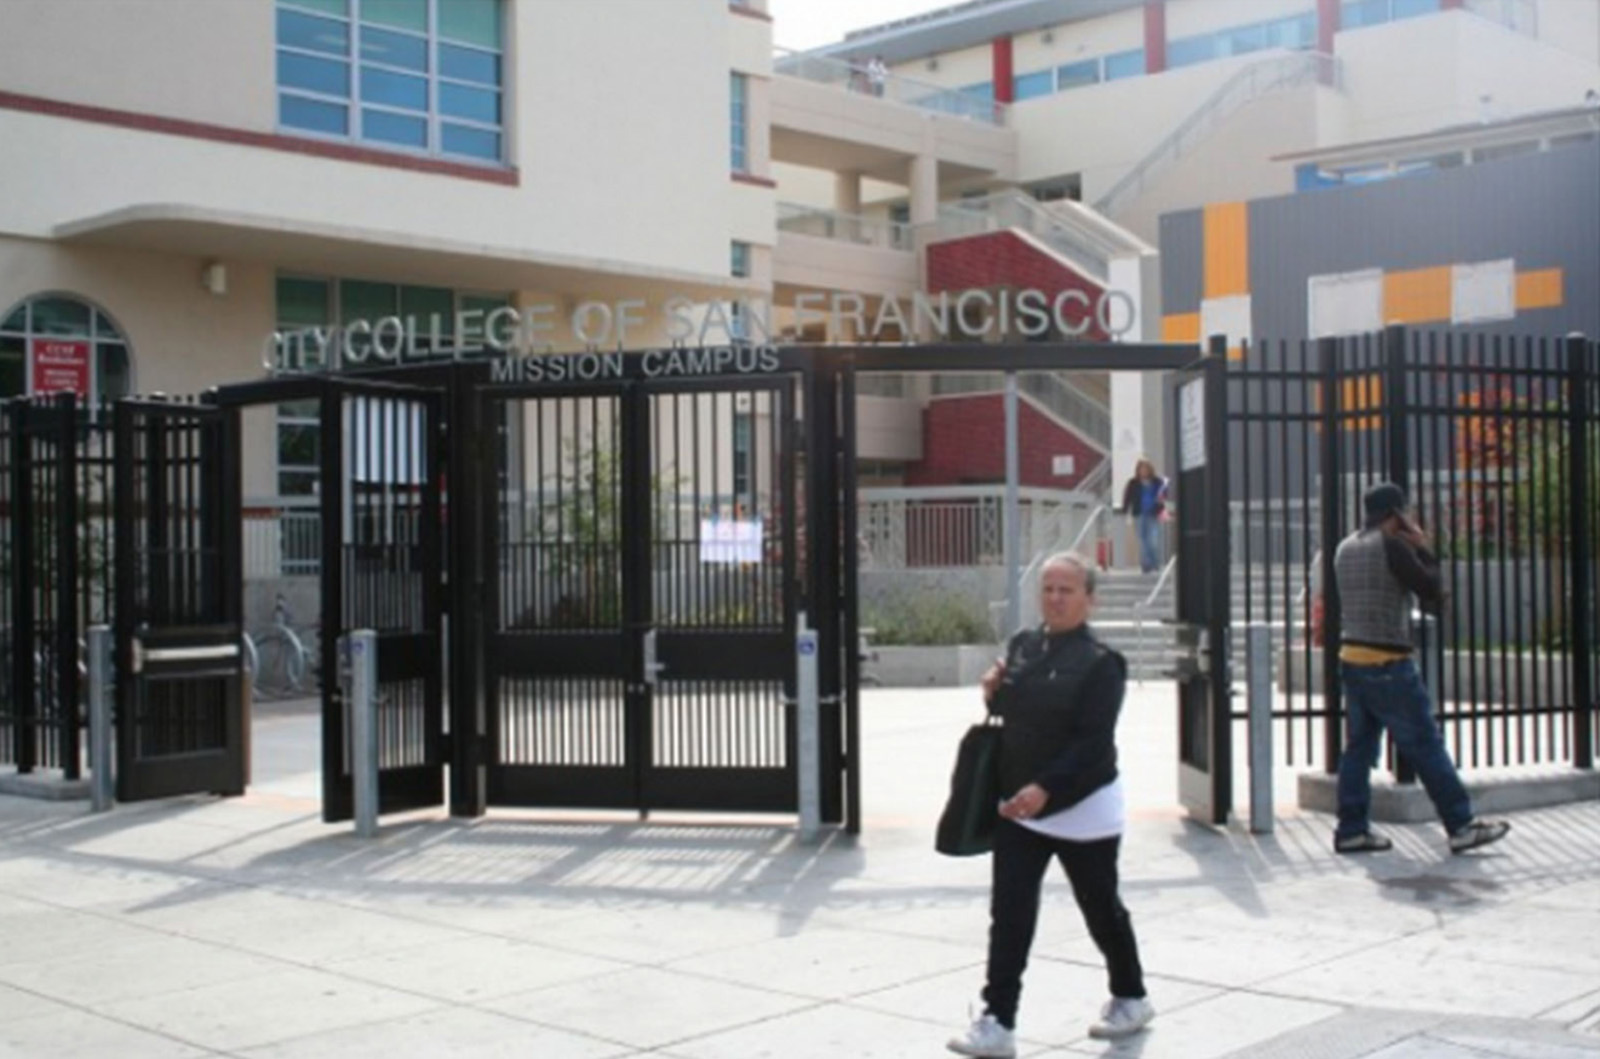 City college of san francisco to lose accreditation 187 missionlocal